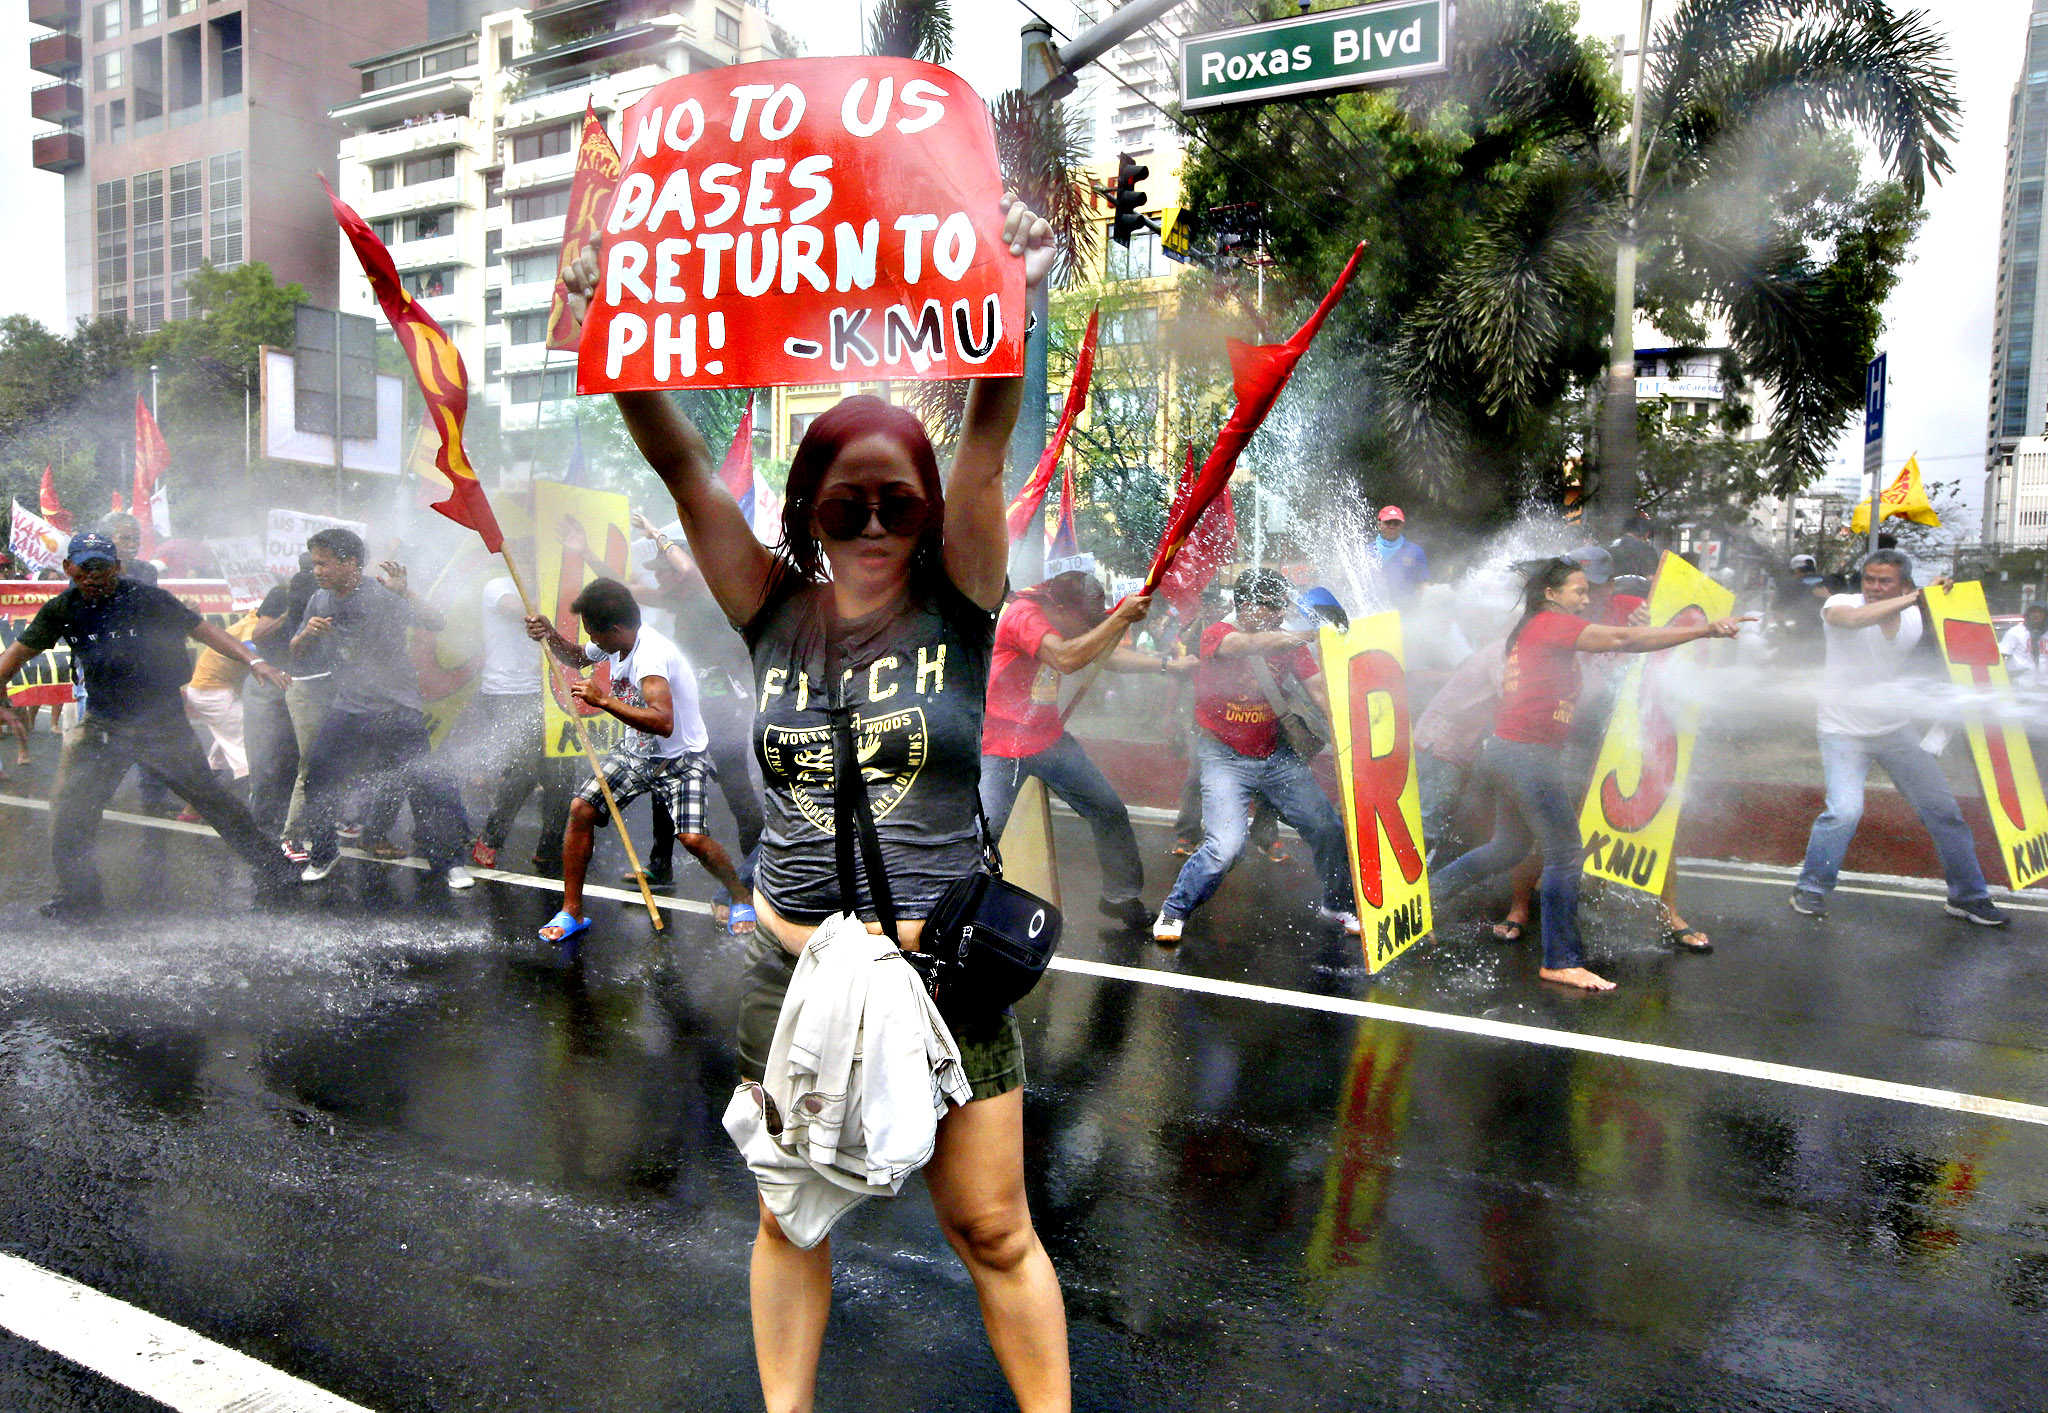 Firemen spray their water cannon at protesters who are forcing their way closer to U.S. Embassy in Manila, Philippines, Tuesday, Feb. 25, 2014 during a protest against the forthcoming visit of U.S. President Barack Obama. The protesters were also calling for the pullout of U.S. troops in the country under the Visiting Forces Agreement